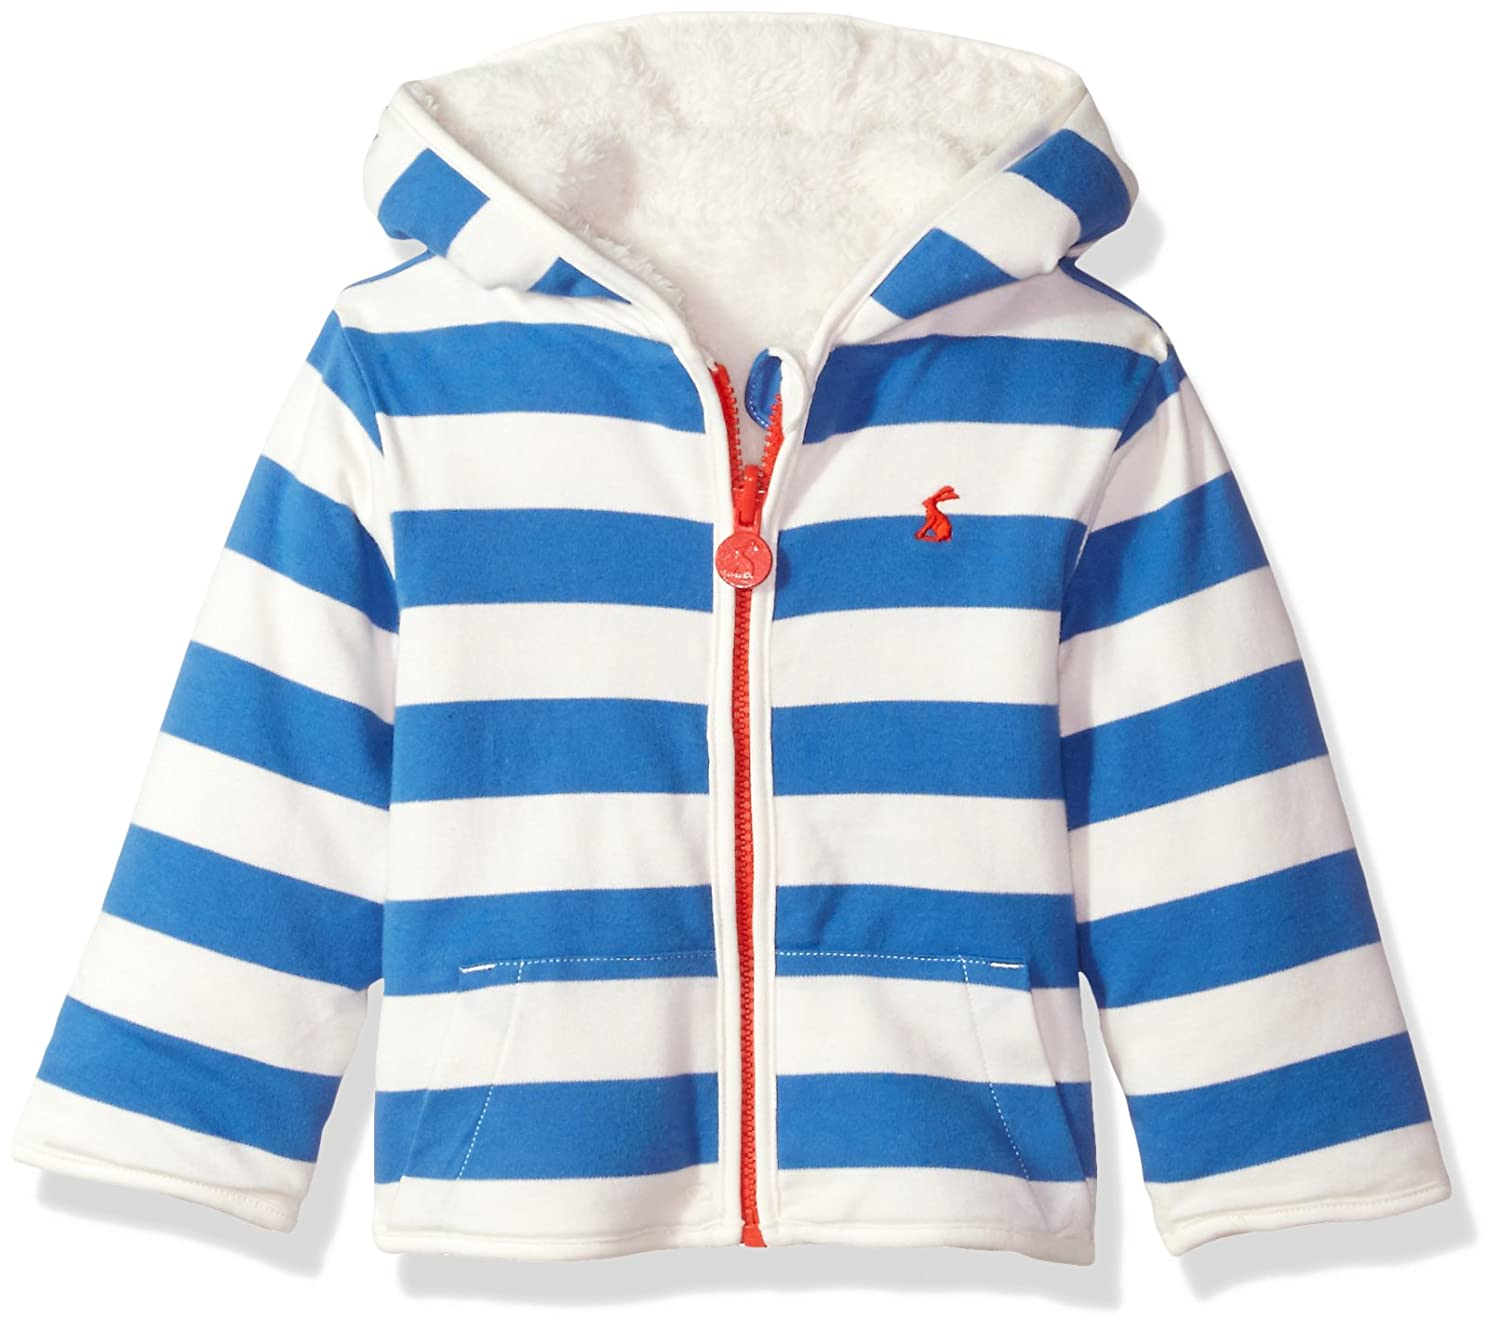 Joules Baby Reversible Zip Fleece - Ocean Blue Stripe